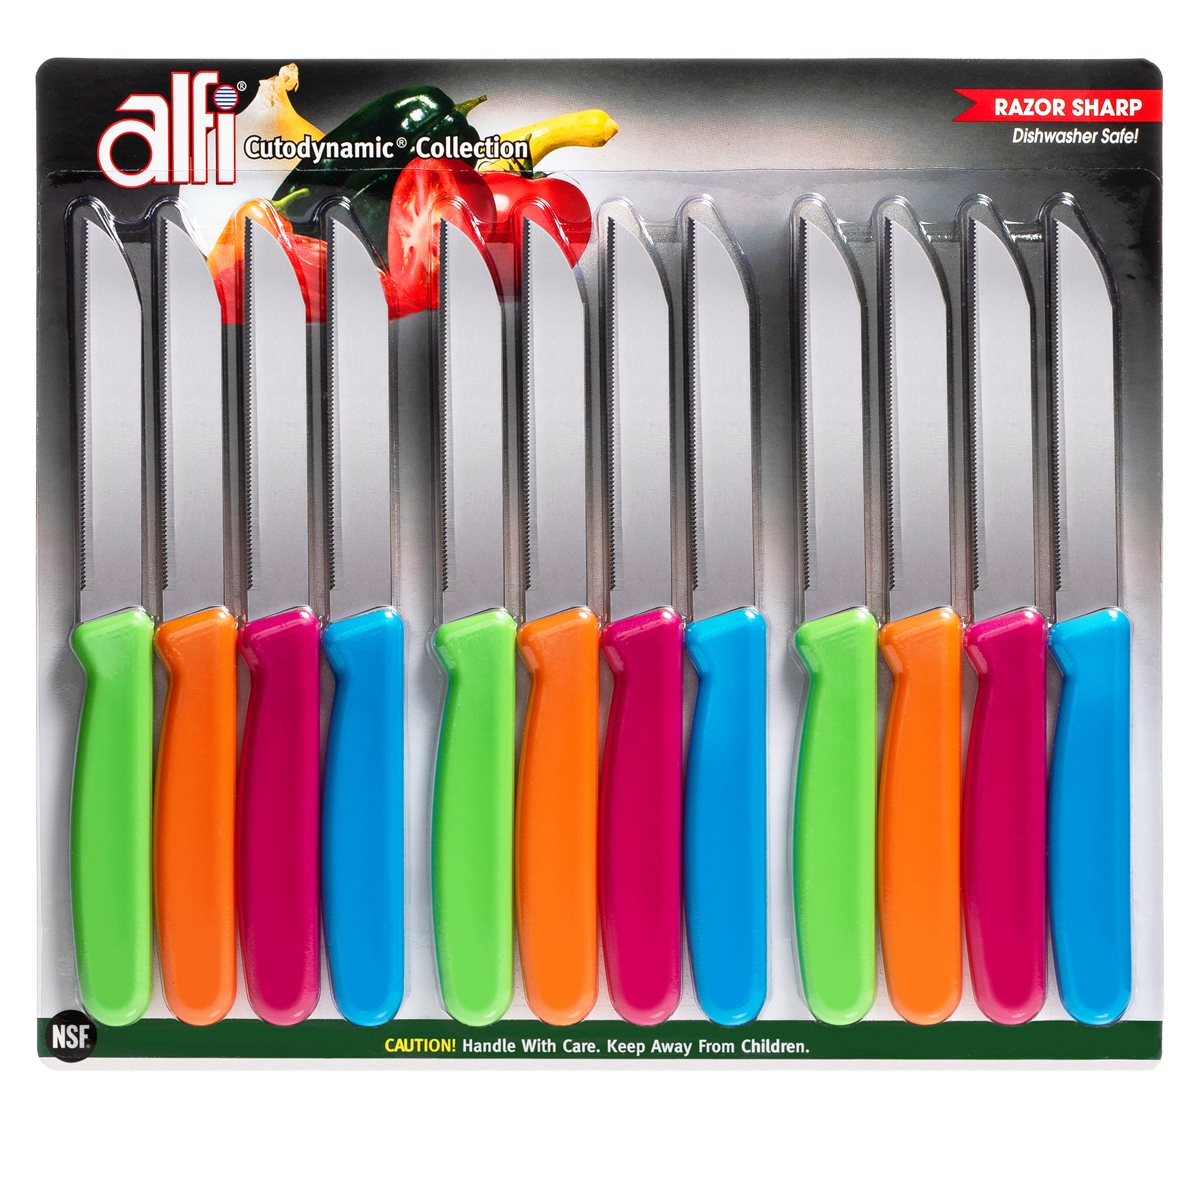 Alfi Cutodynamic High Performance All Purpose Made In Usa Knives Set Of 12 Pointed Tip